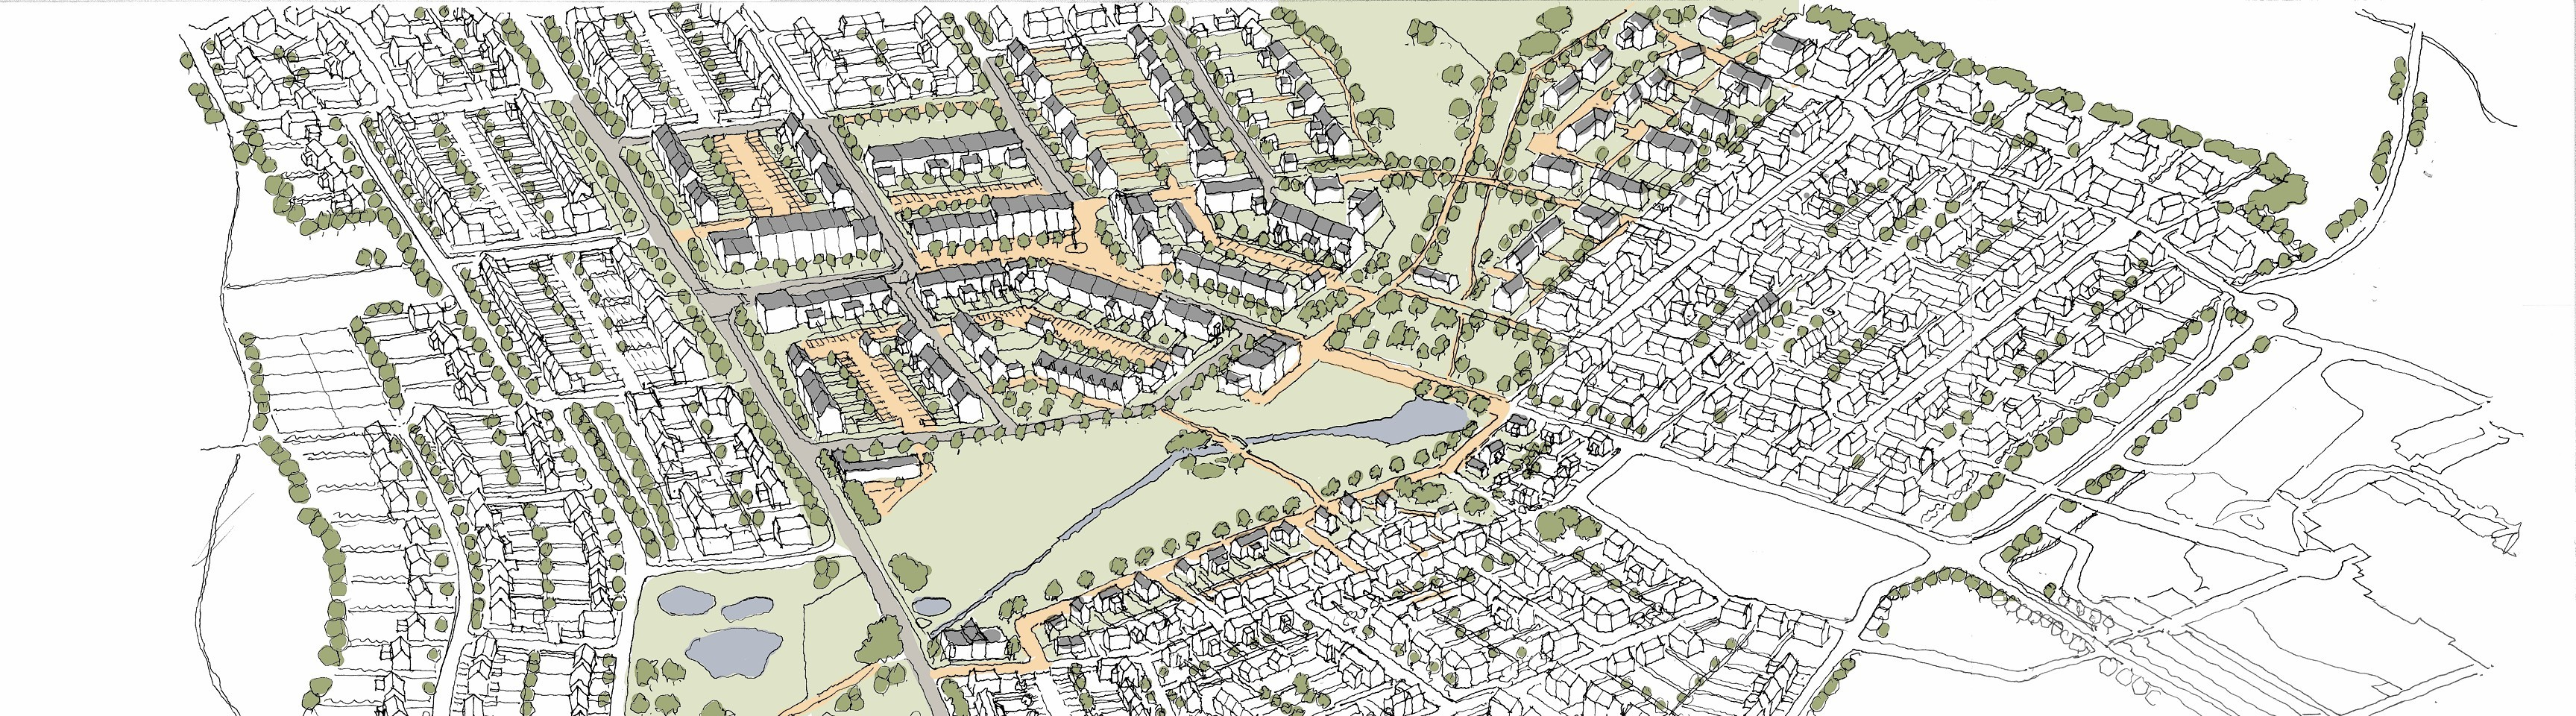 """Scotia Homes' masterplan for a """"neighbourhood expansion"""" of Ellon at Cromleybank"""